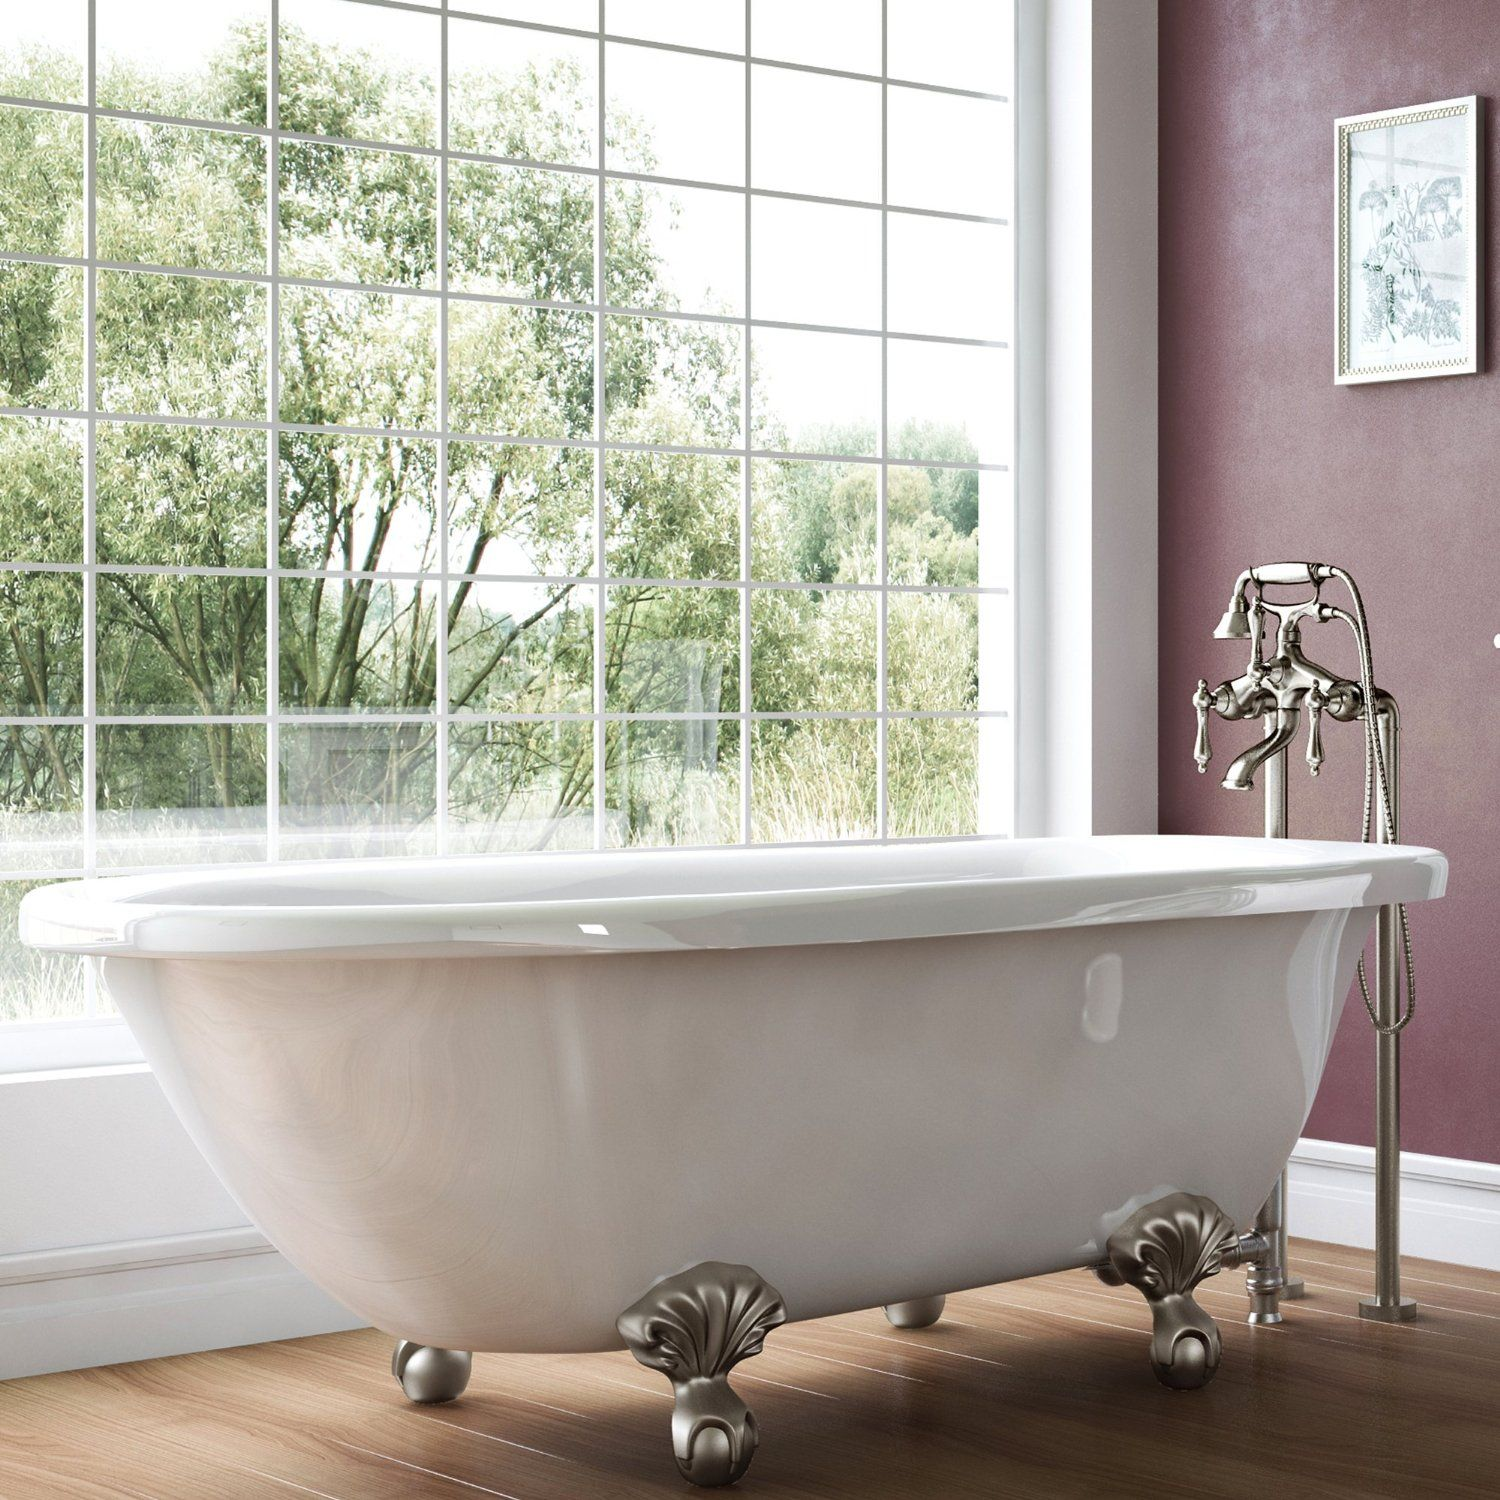 20 Small Bathtubs That Make Big Statements Piccola Vasca Da Bagno Idee Bagno Piccolo Bagno Piccolo